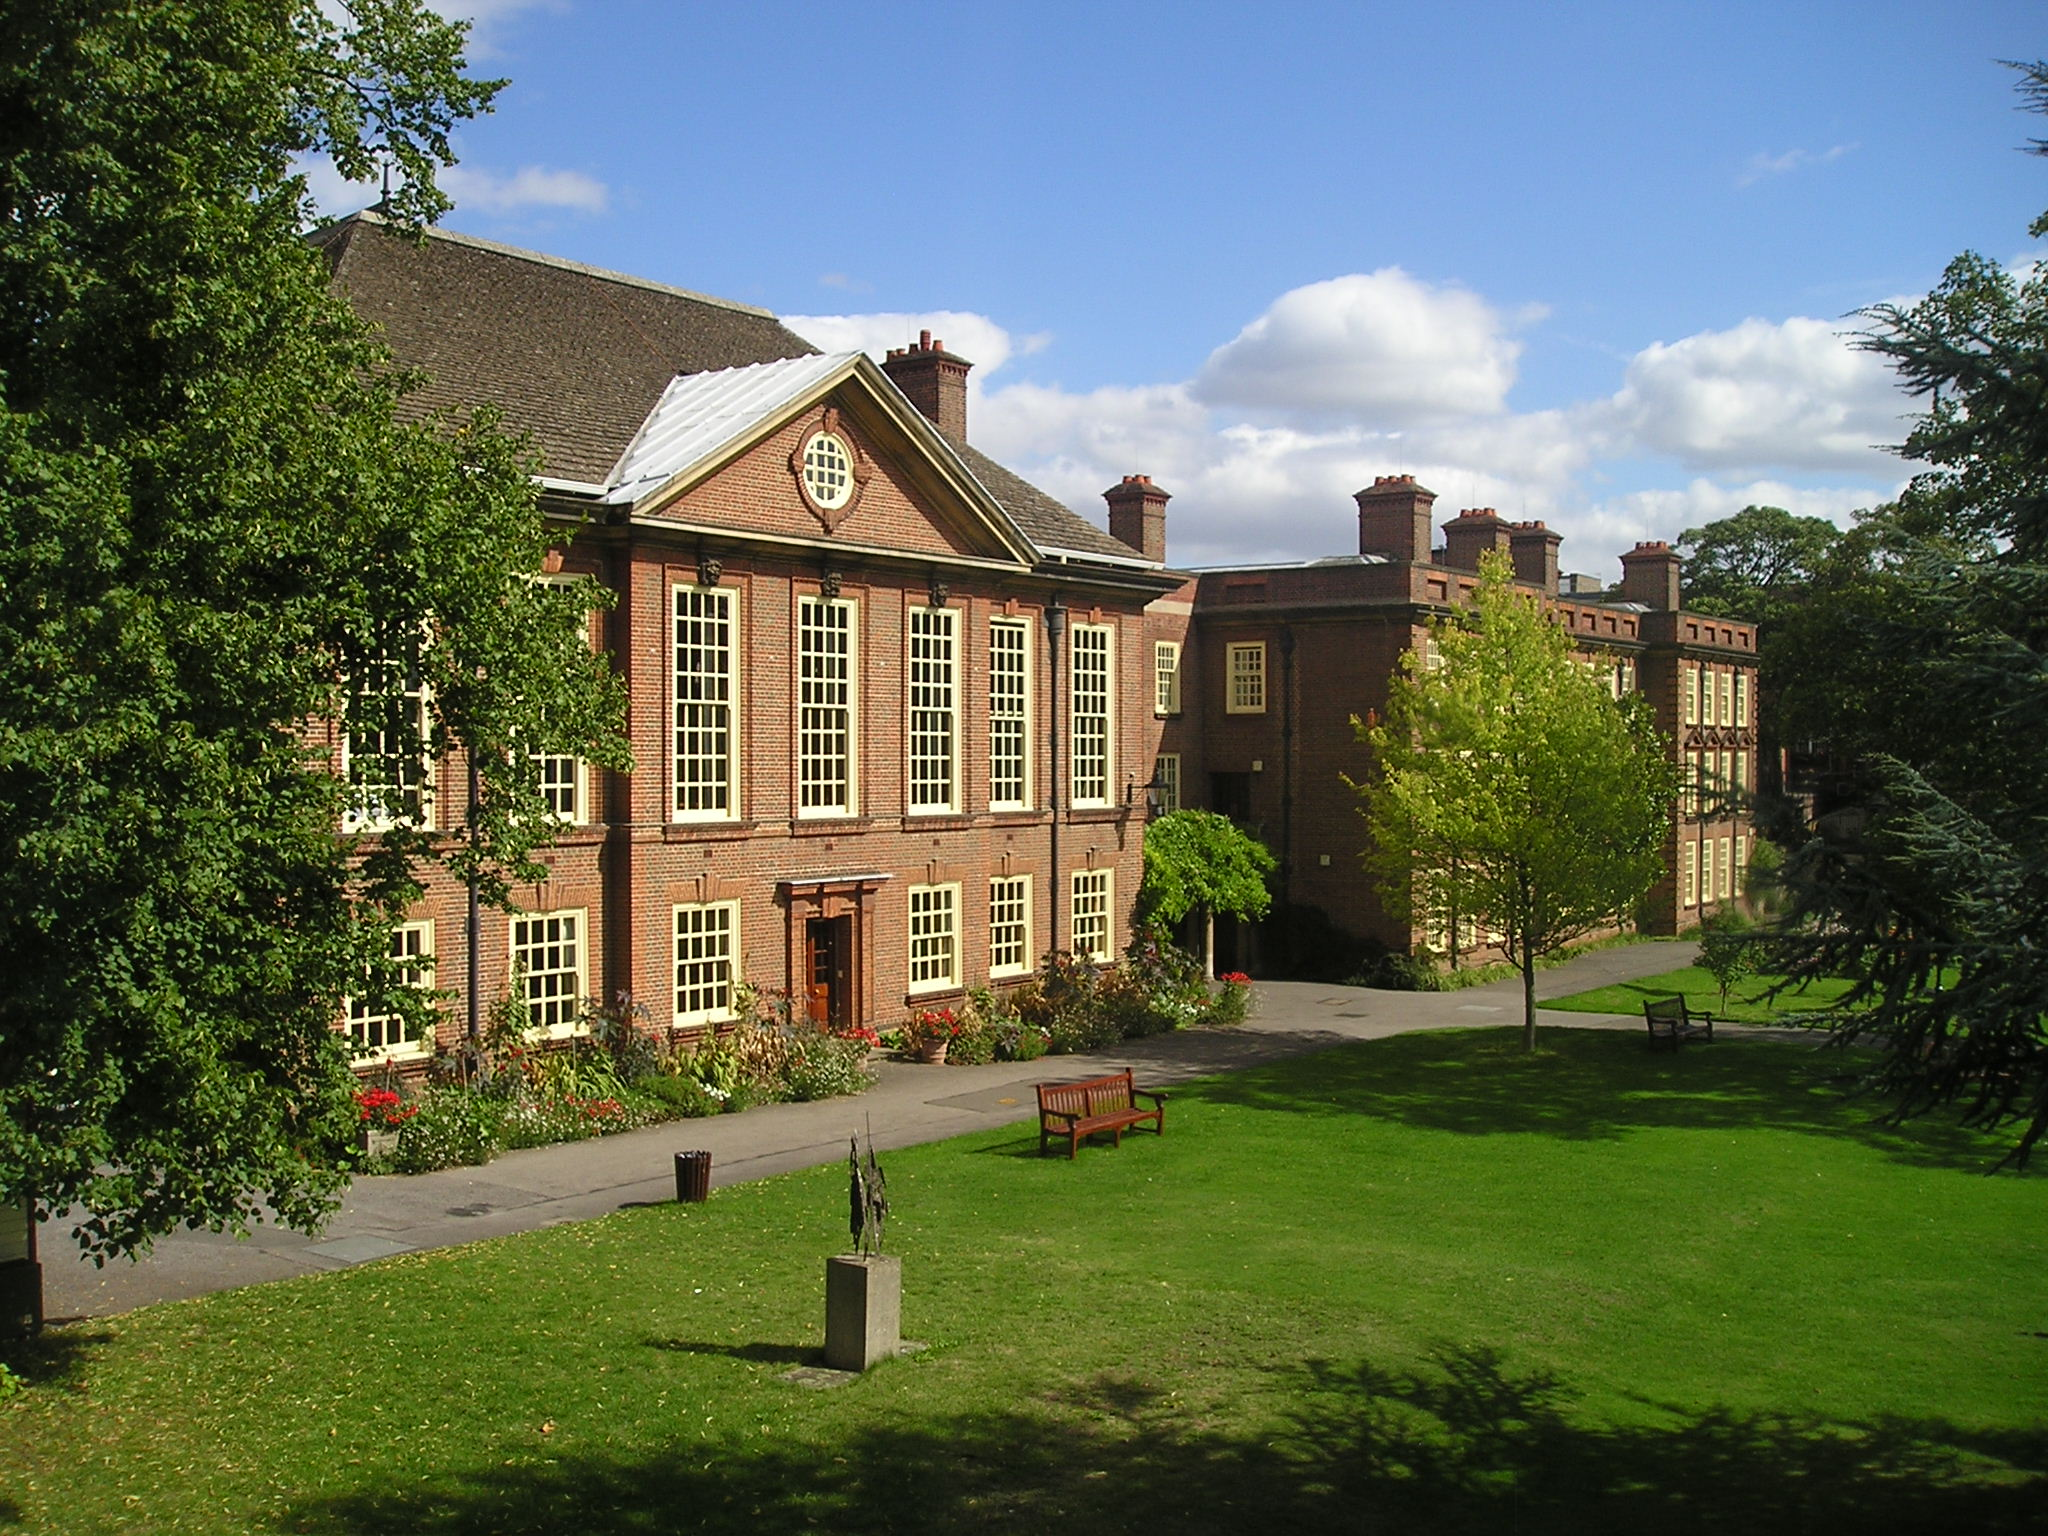 image of Somerville College